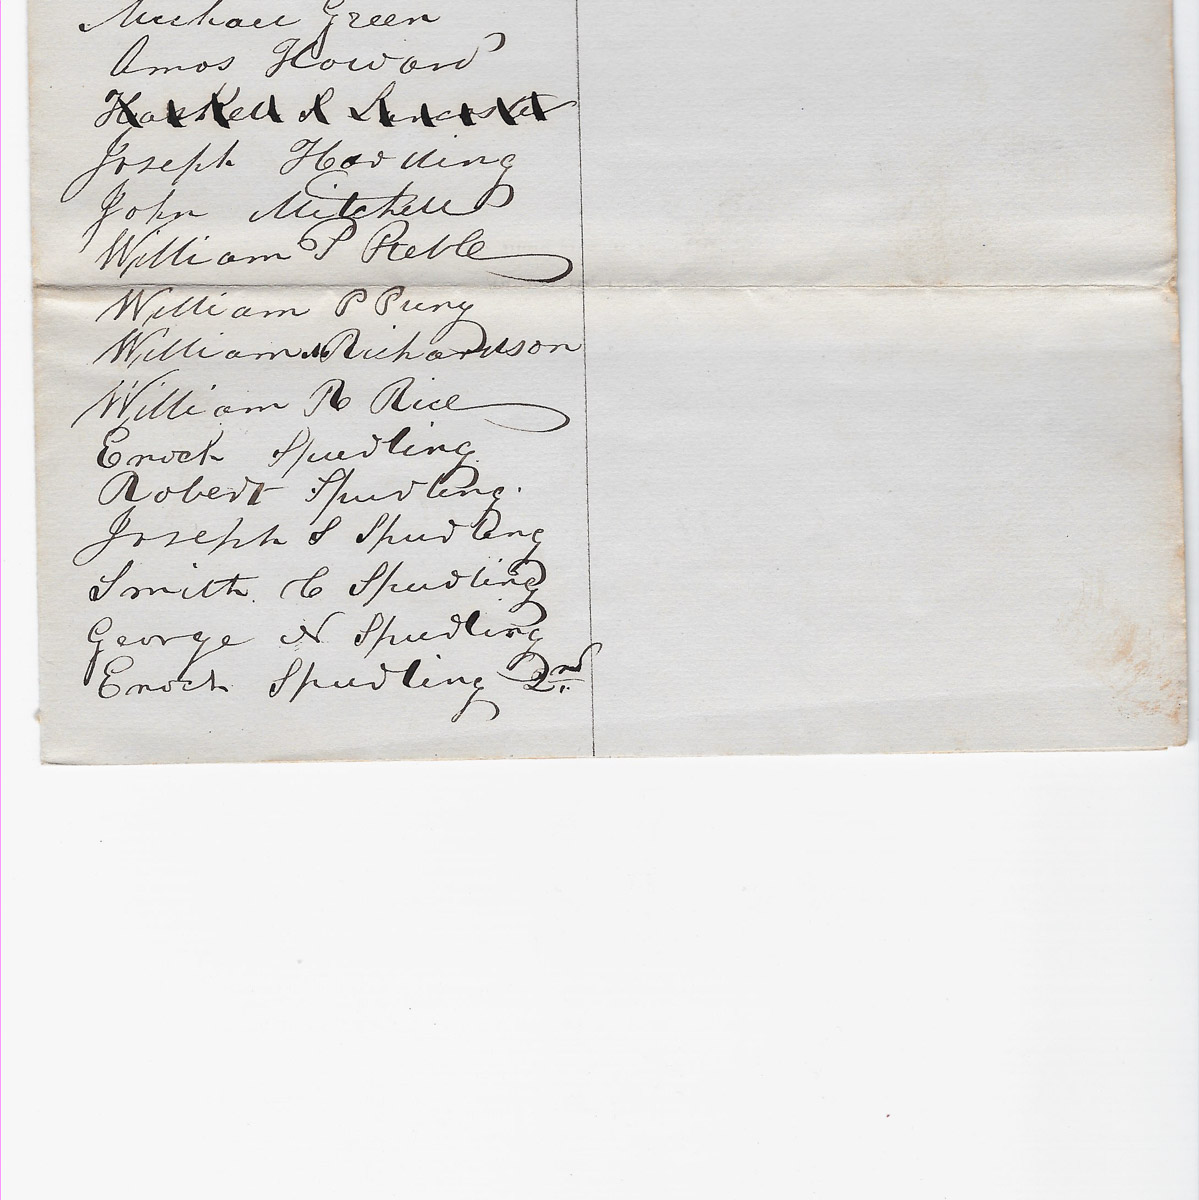 Town of Cranberry Isles records - 1849